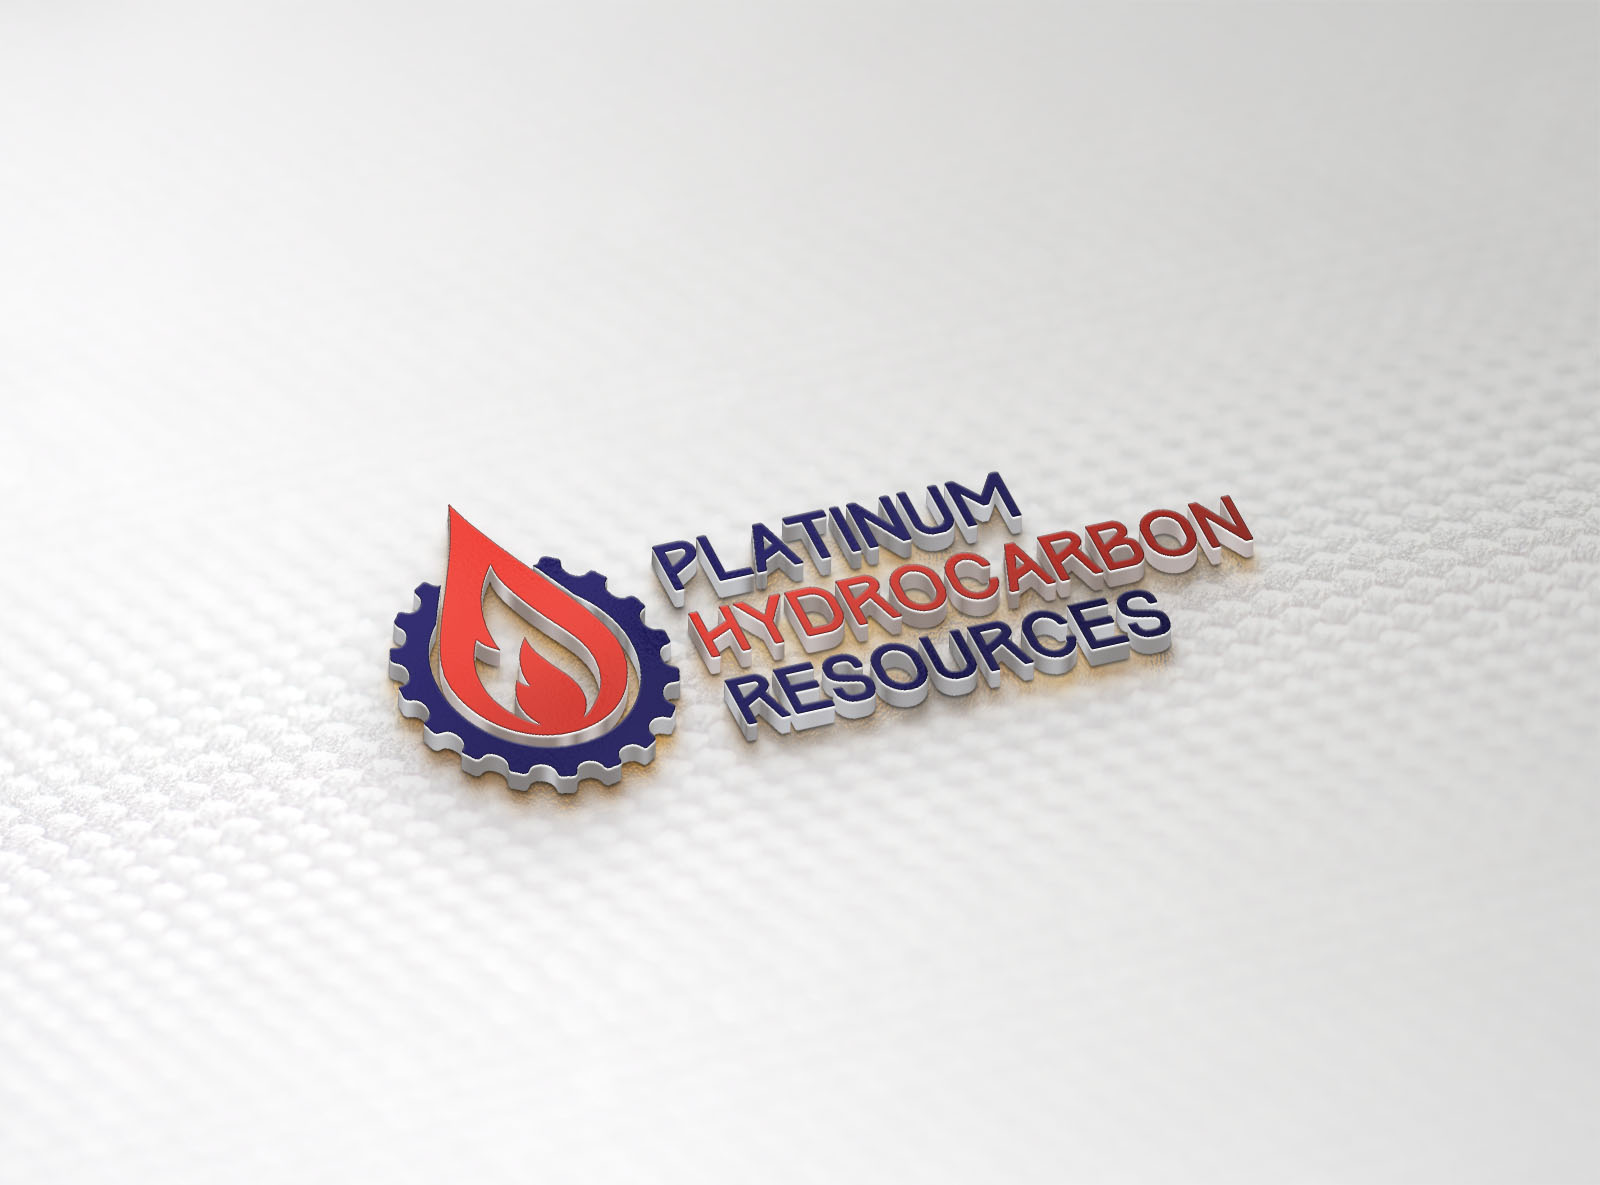 Platinum Hydrocarbon Resources logo